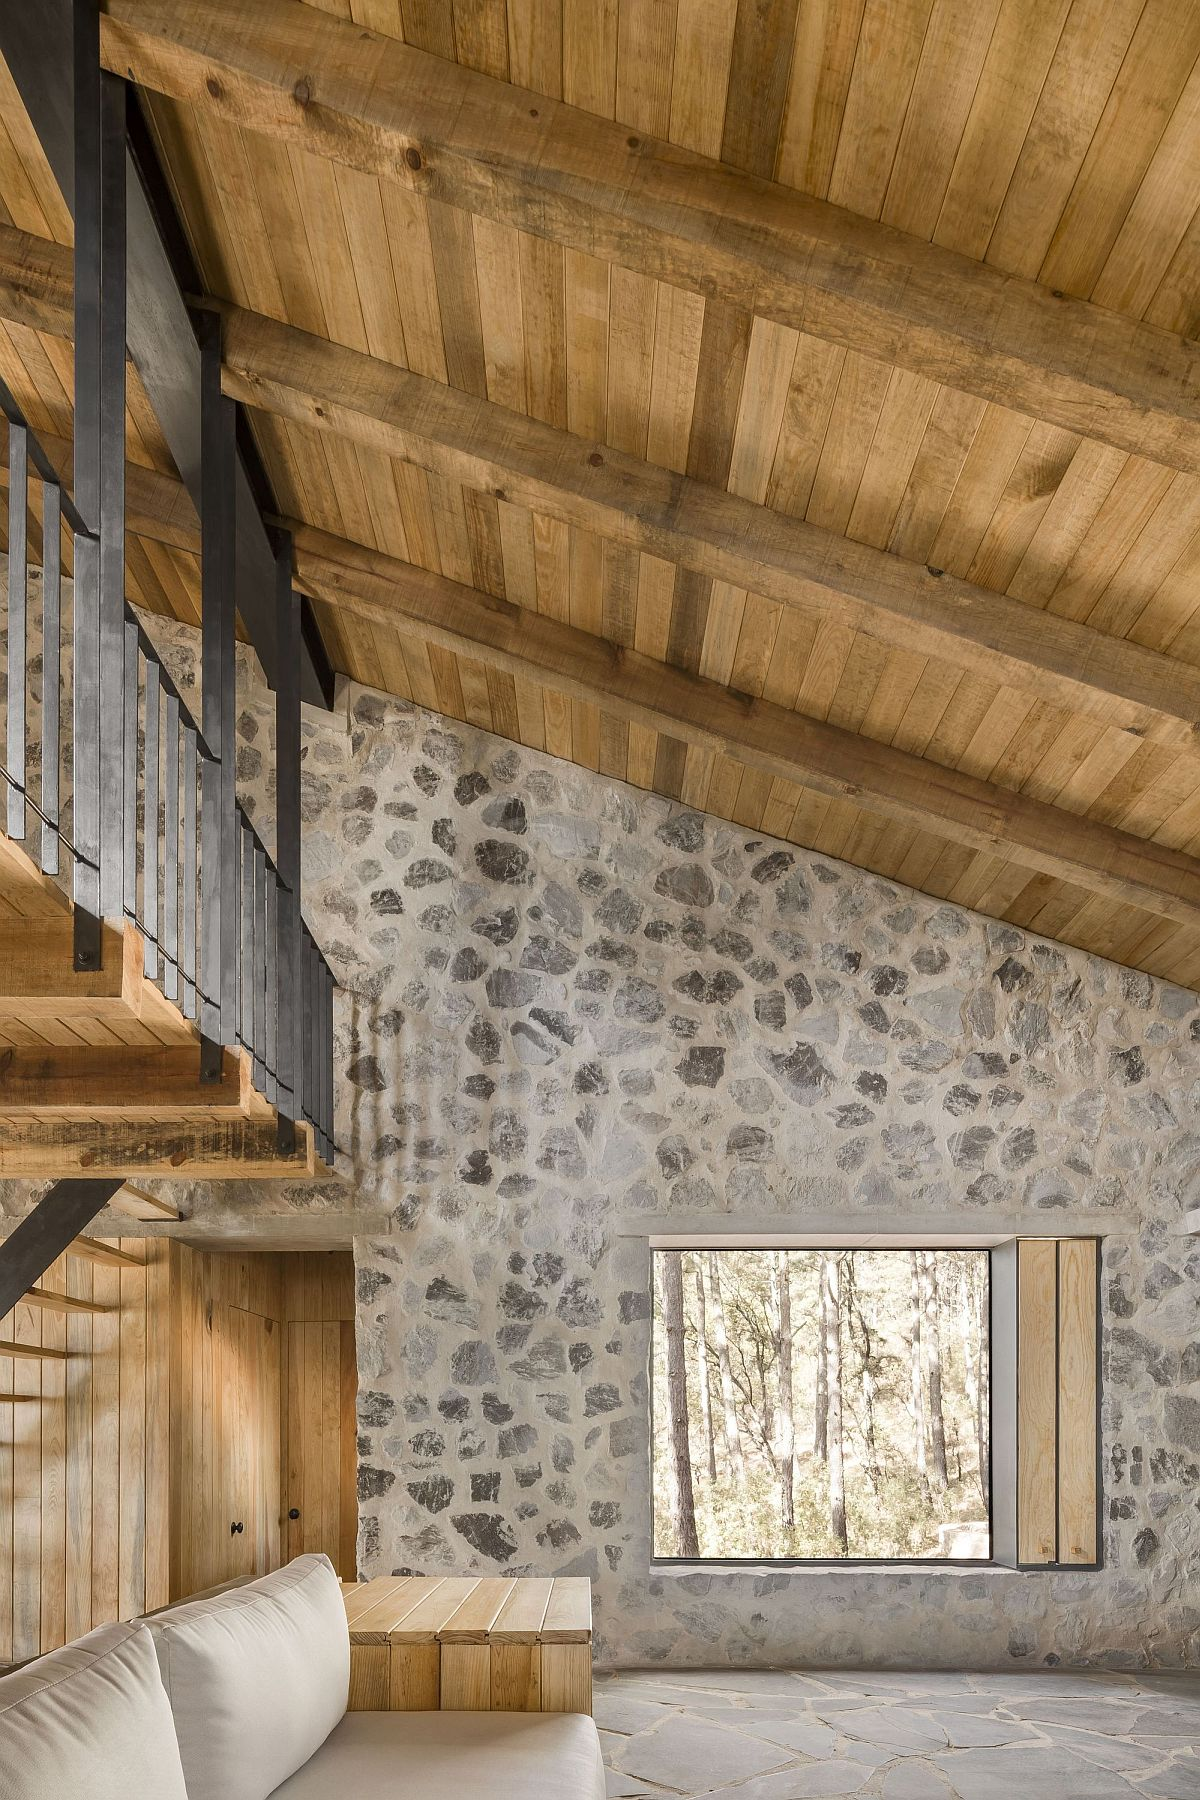 Look at the interior of the stone cabins with sloped wooden ceiling